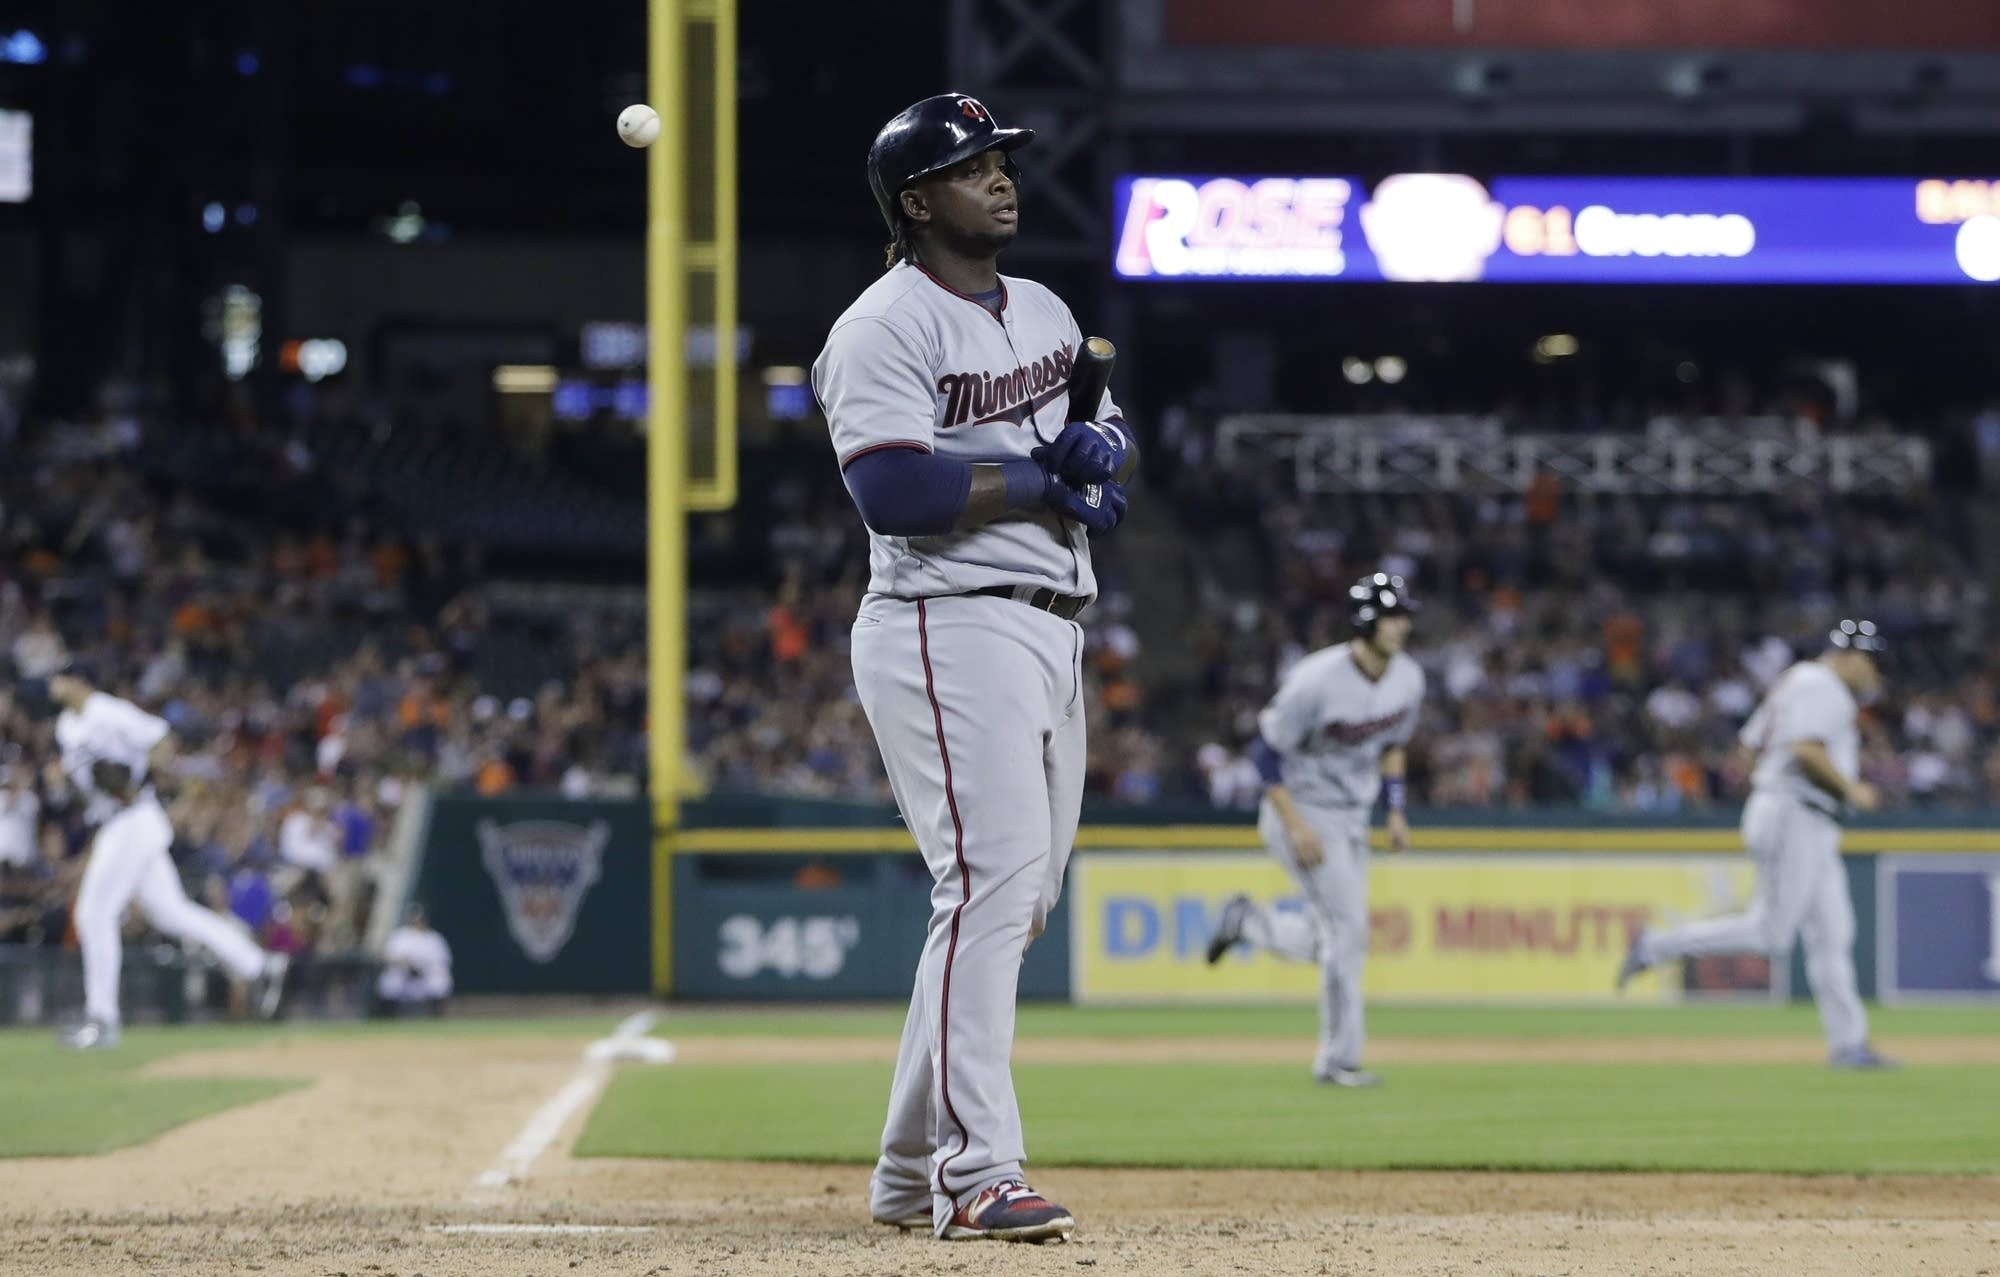 Twins release statement on Miguel Sano sexual assault allegations